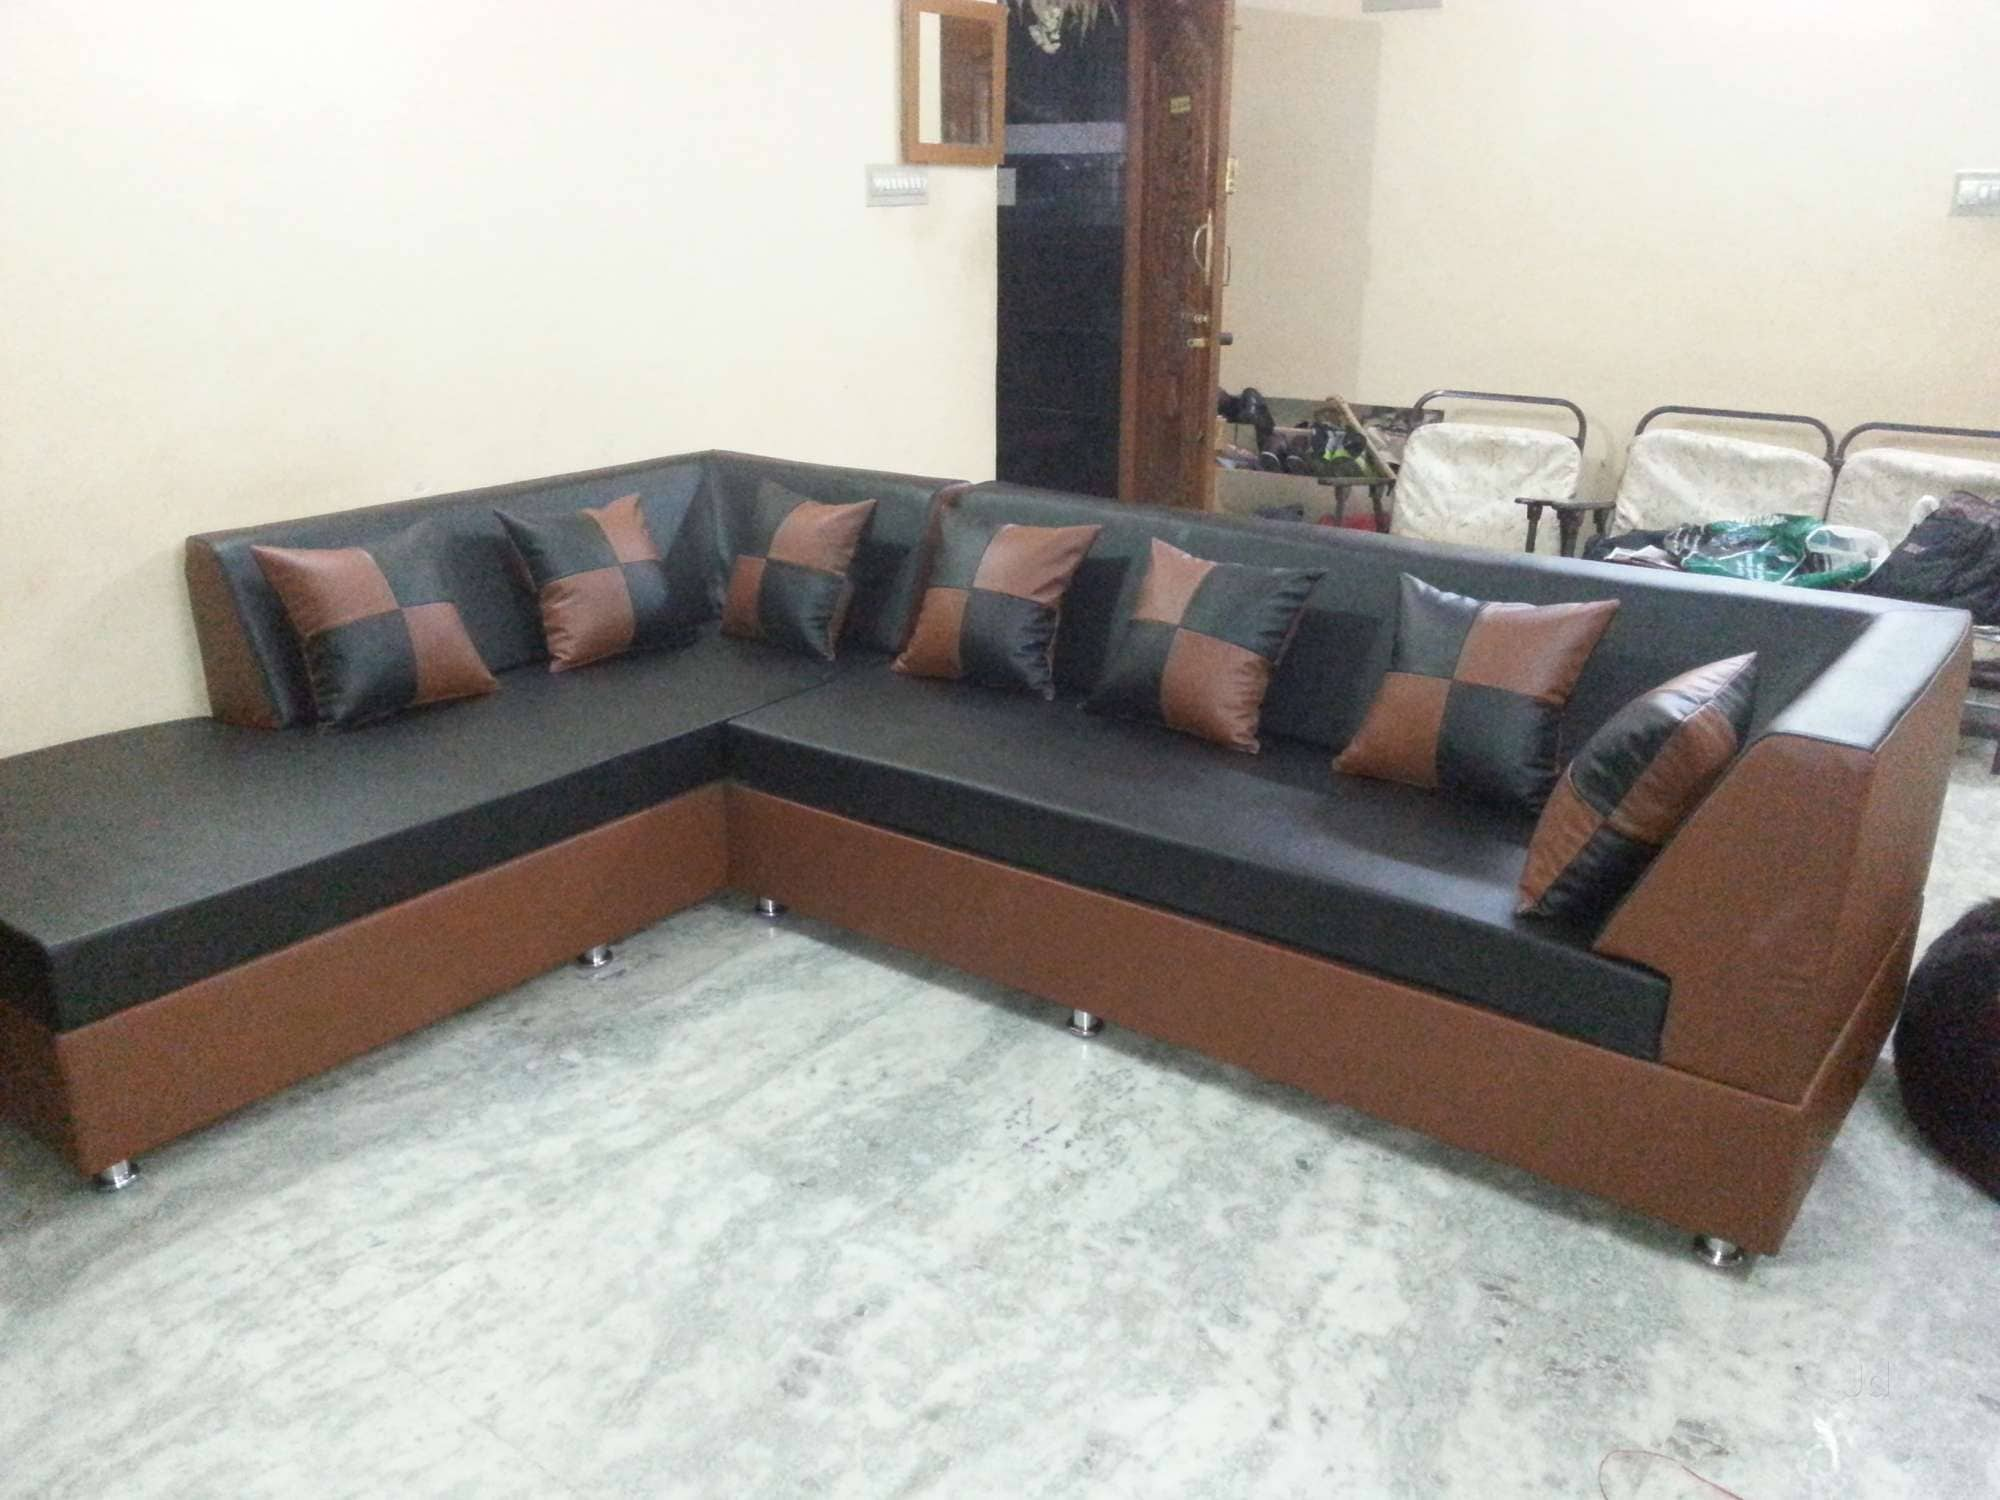 Recliner Sofa Repair Chennai Top 50 Recliner Sofa Repair Services In Vidyaranyapura Best